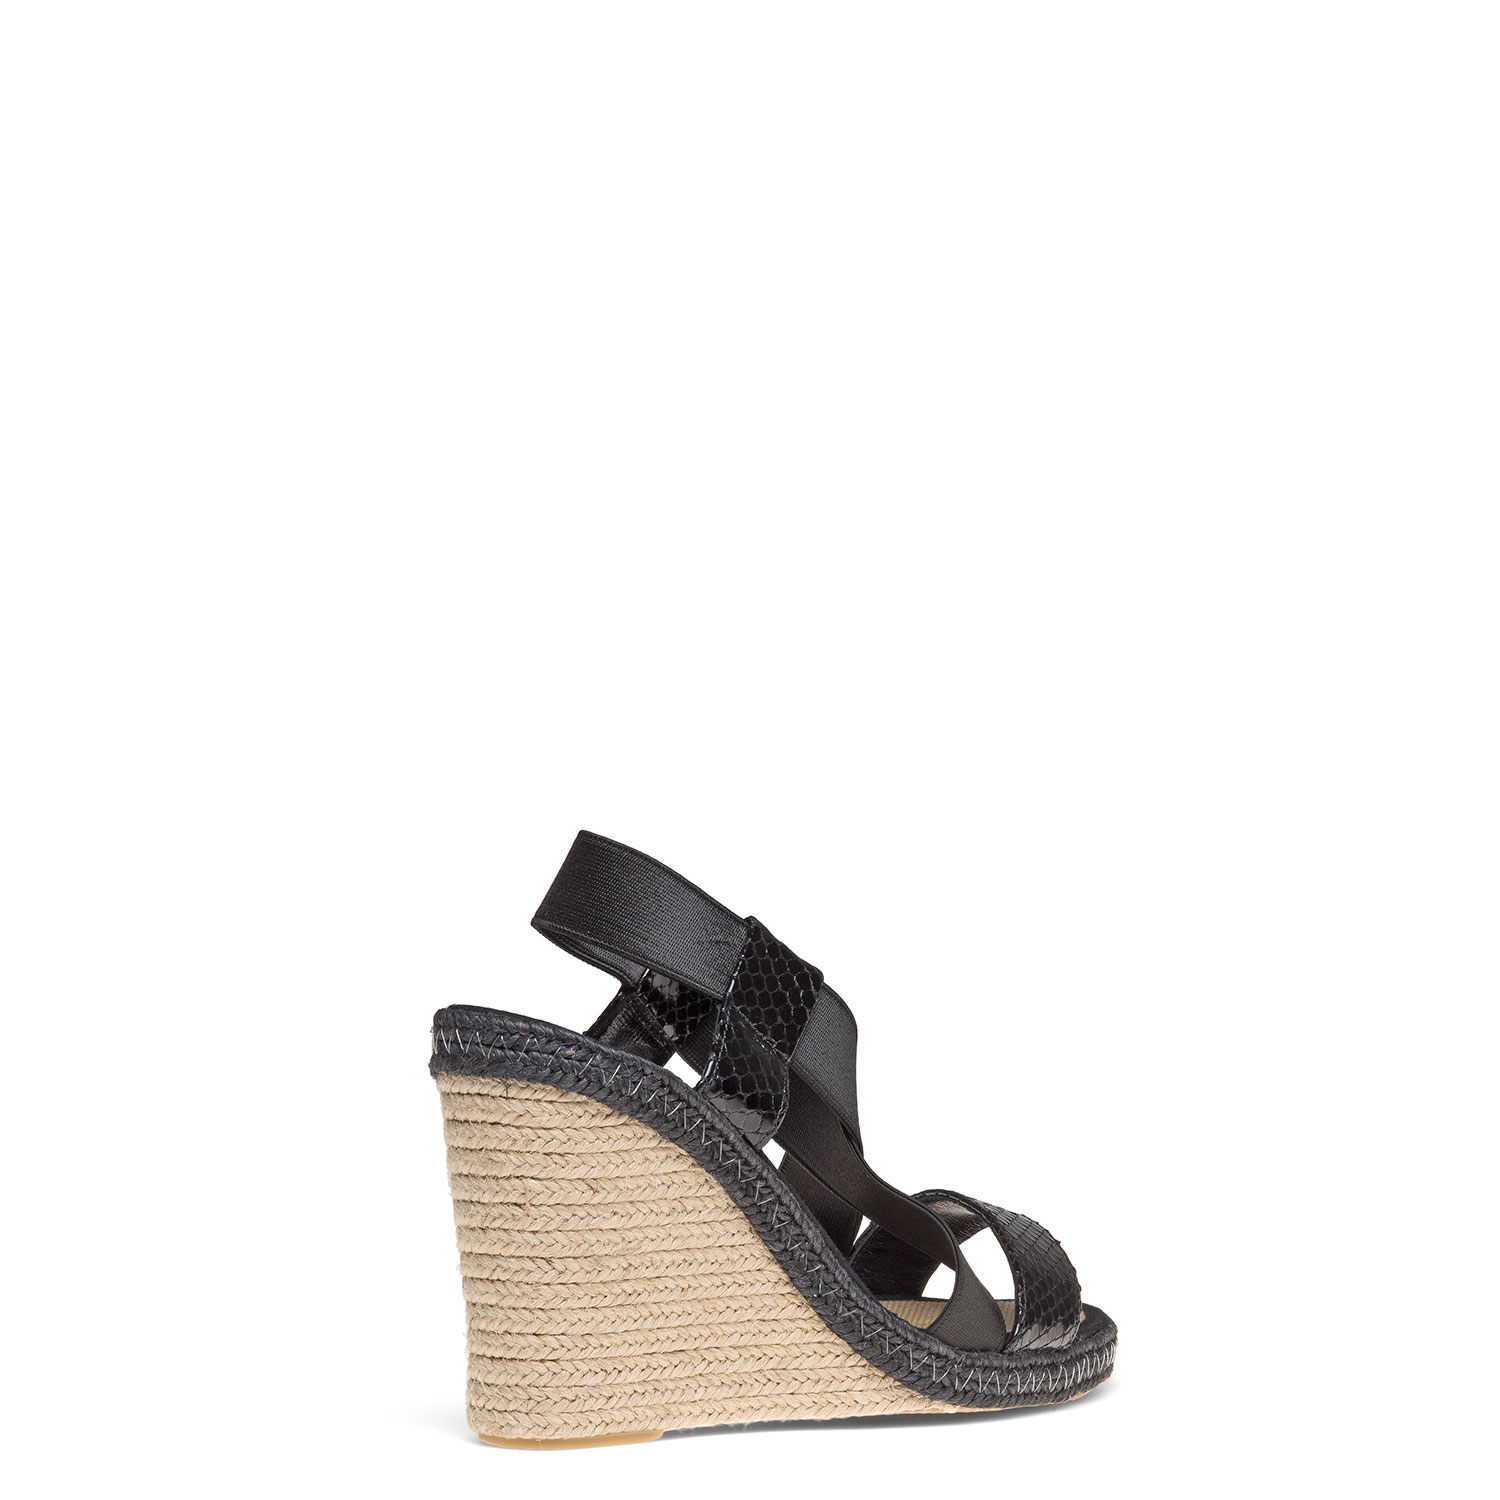 Women's sandals CARLO PAZOLINI CT-X2000-1